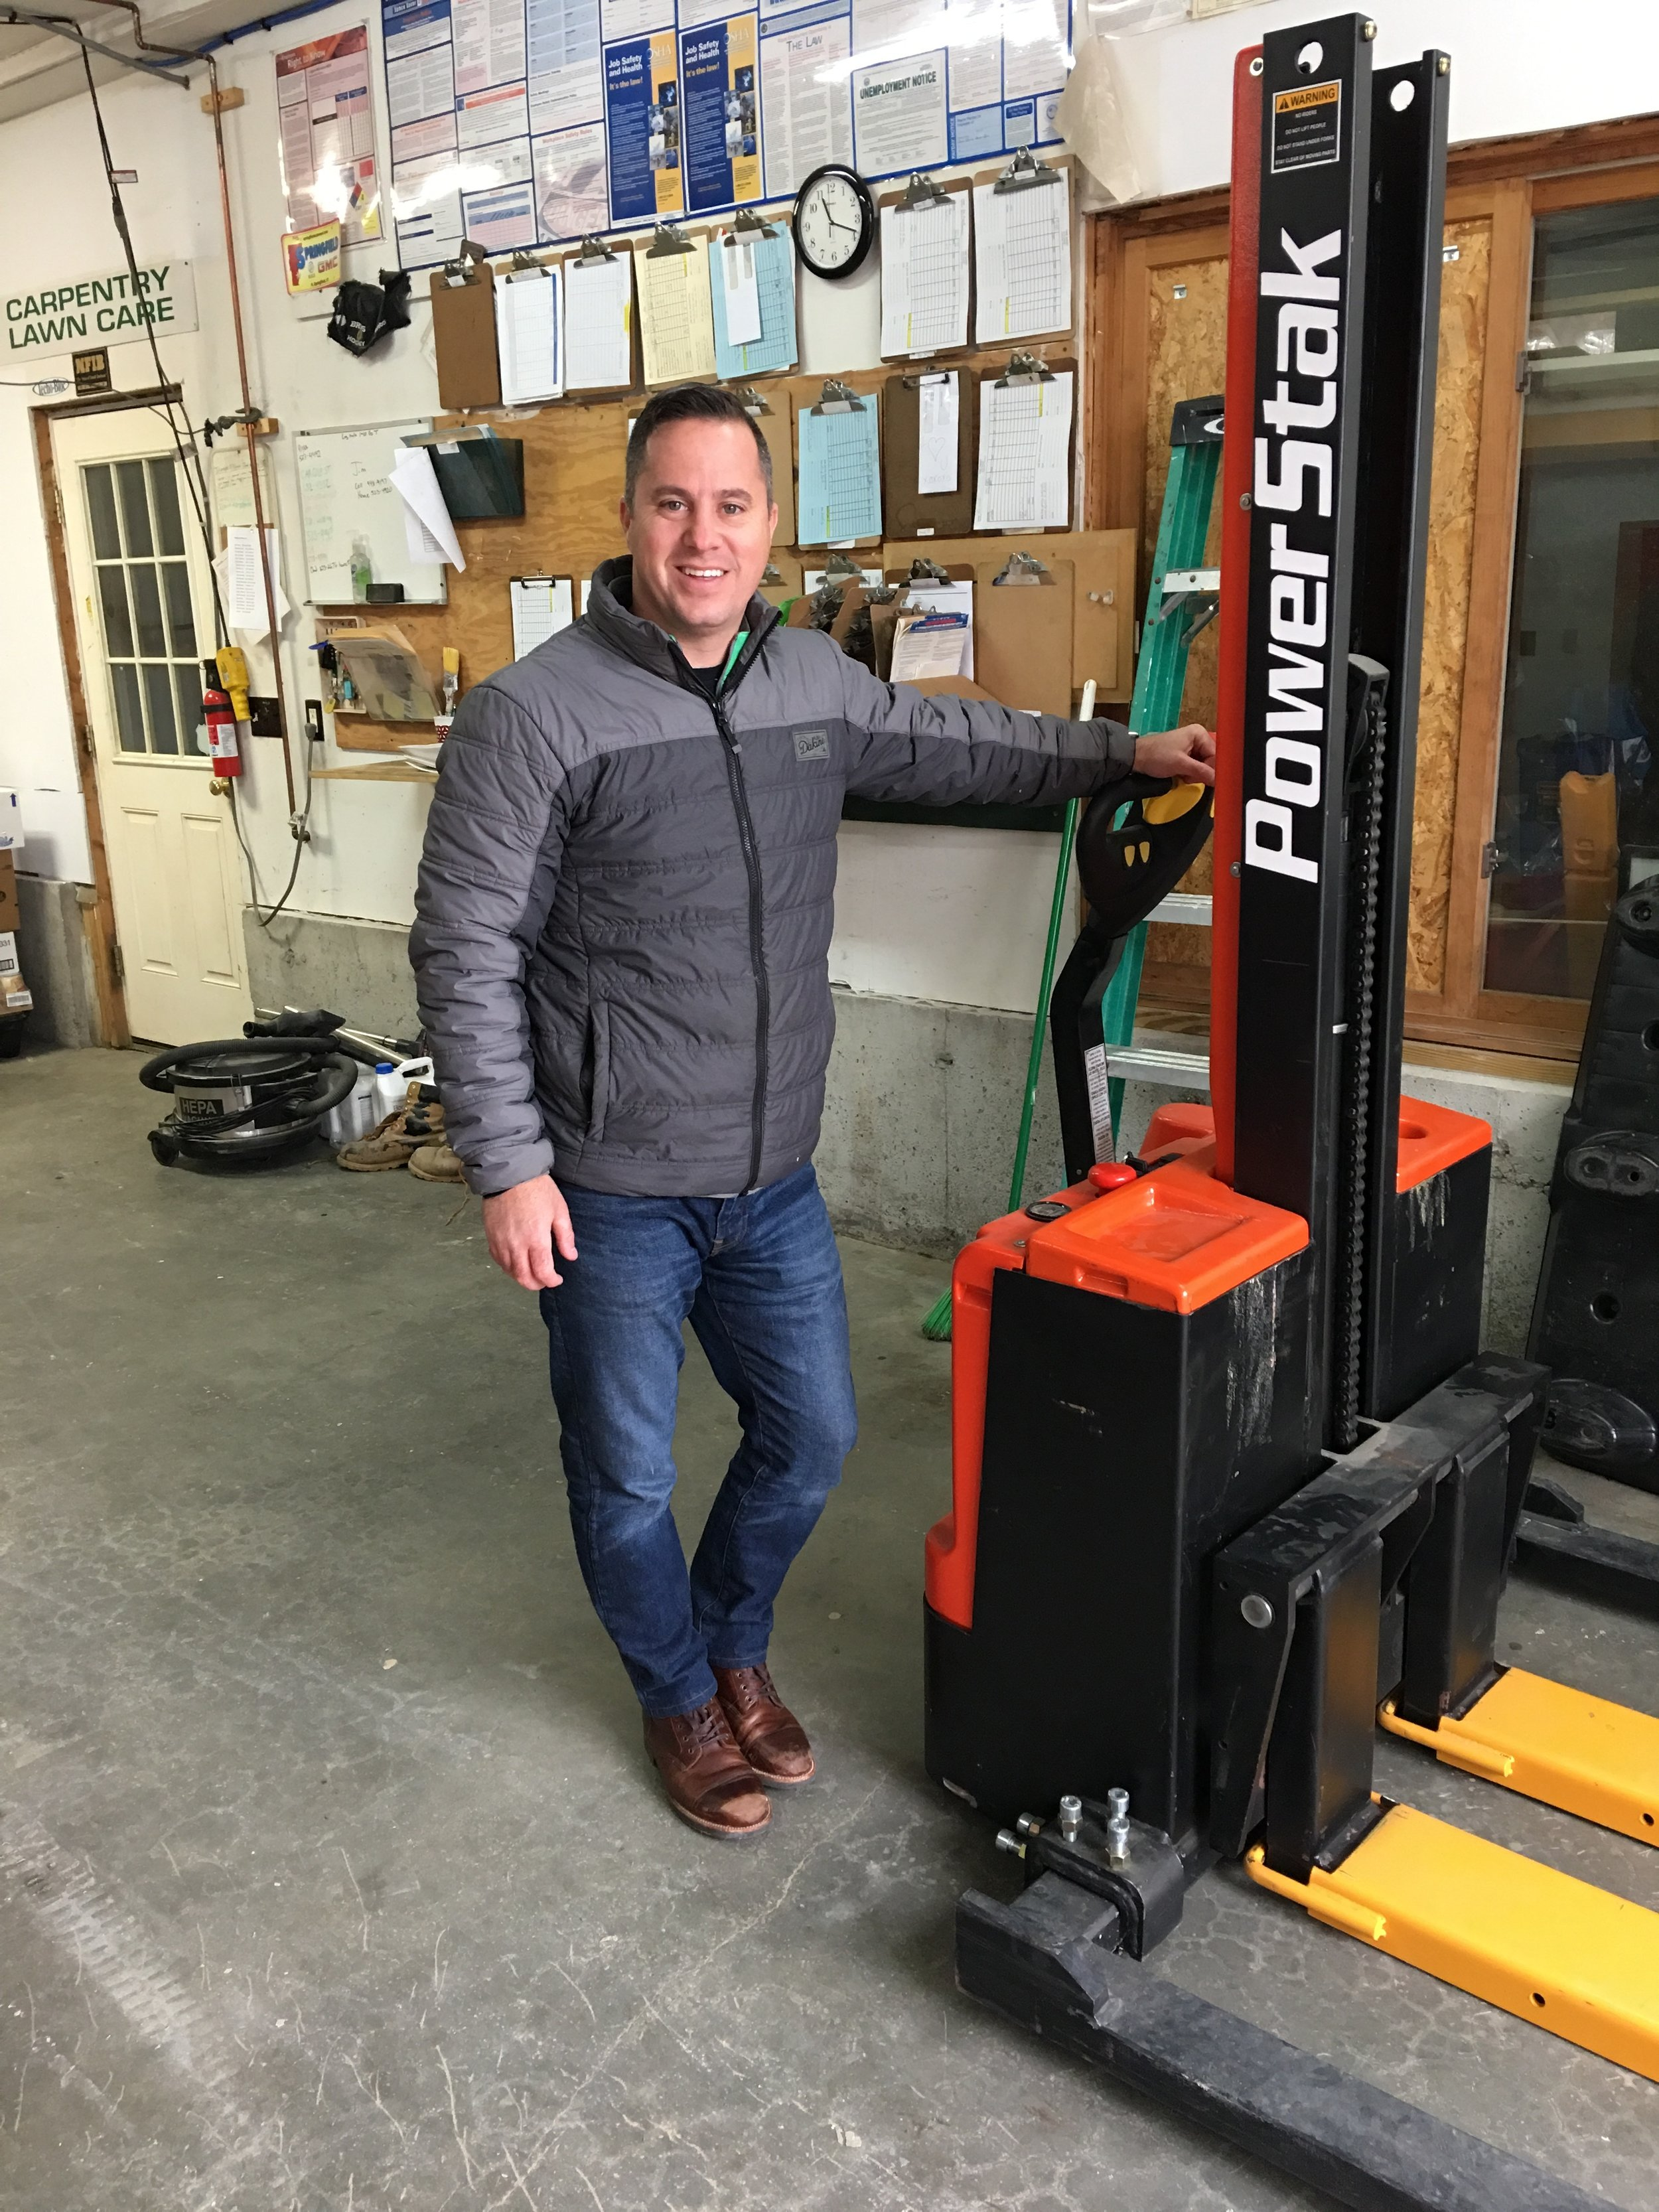 It's official! We now have a SUPER Canaan Pantry Distribution Center thanks to Matt and Becky Dow of MTD Property Maintenance and Construction. Pictured here is Ryan Porter, a volunteer from Enfield who just finished operating our new forklift, thanks to a generous donor. Come and visit us! We would love to show you our new space.